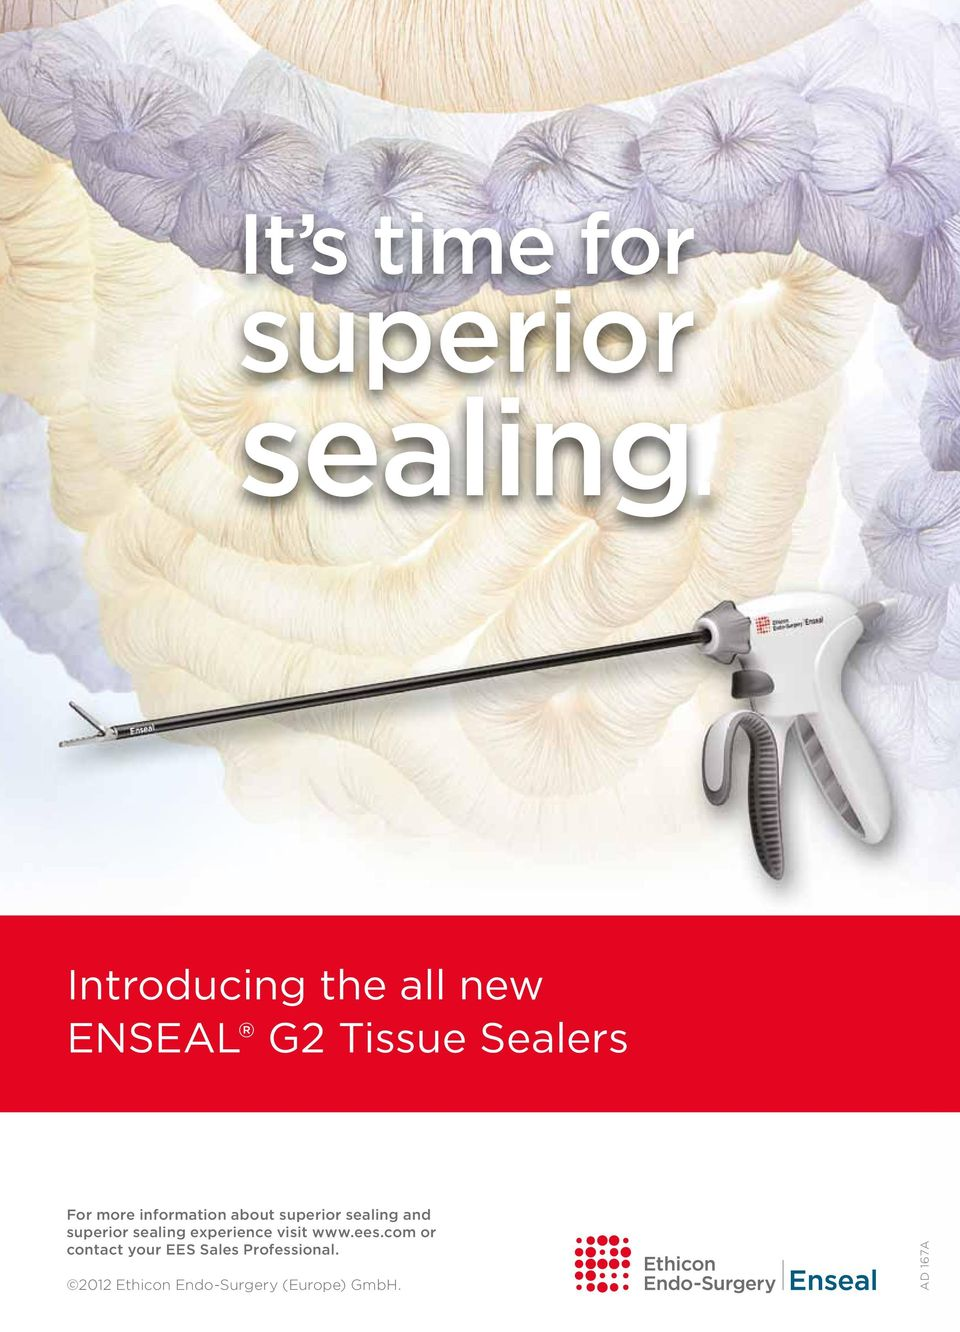 information about superior sealing and superior sealing